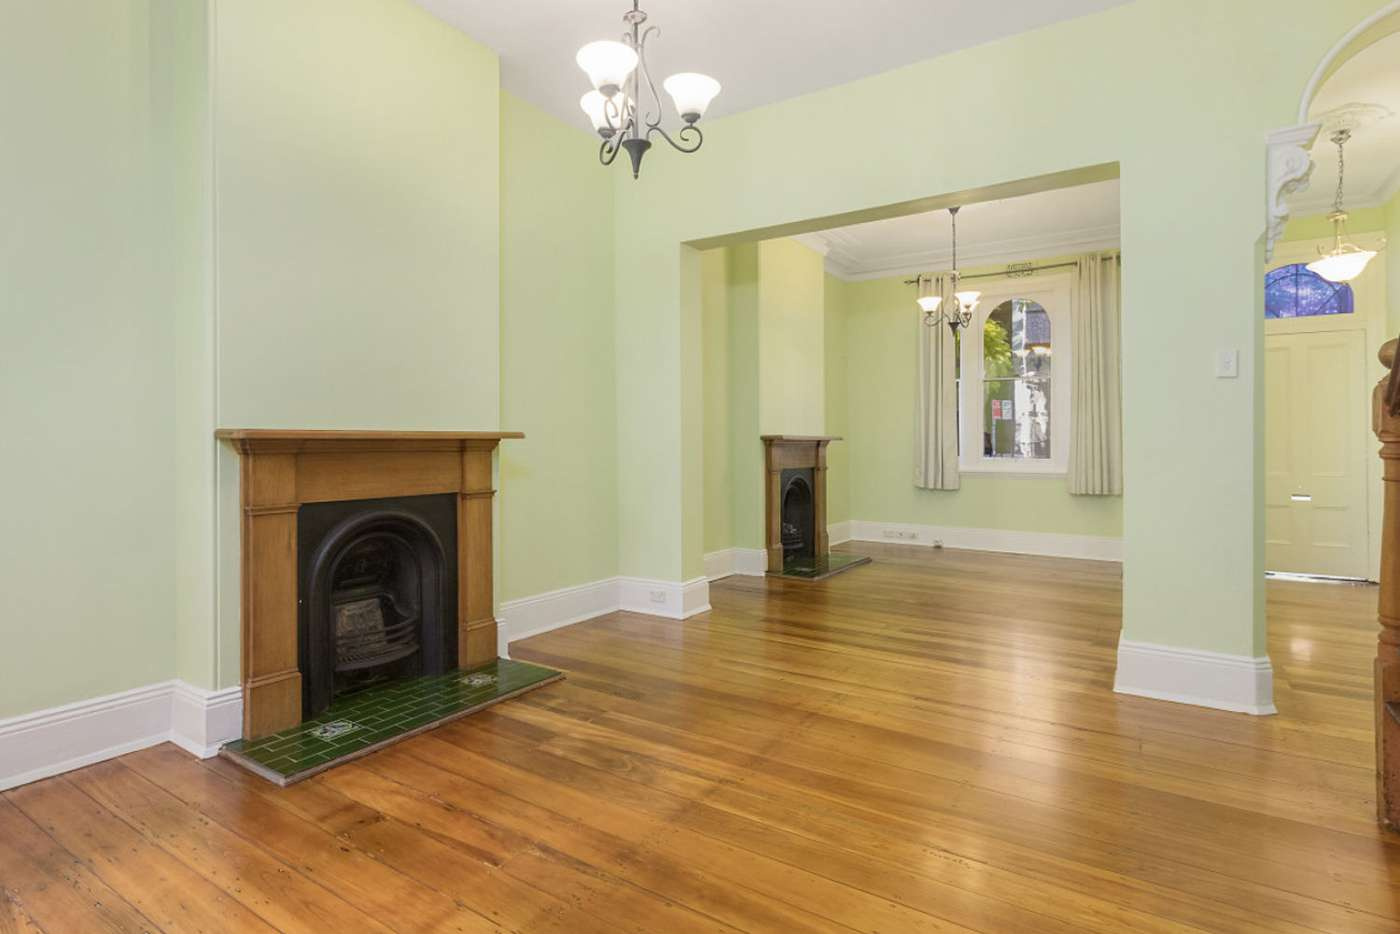 Main view of Homely house listing, 56 Ridge St, Surry Hills NSW 2010